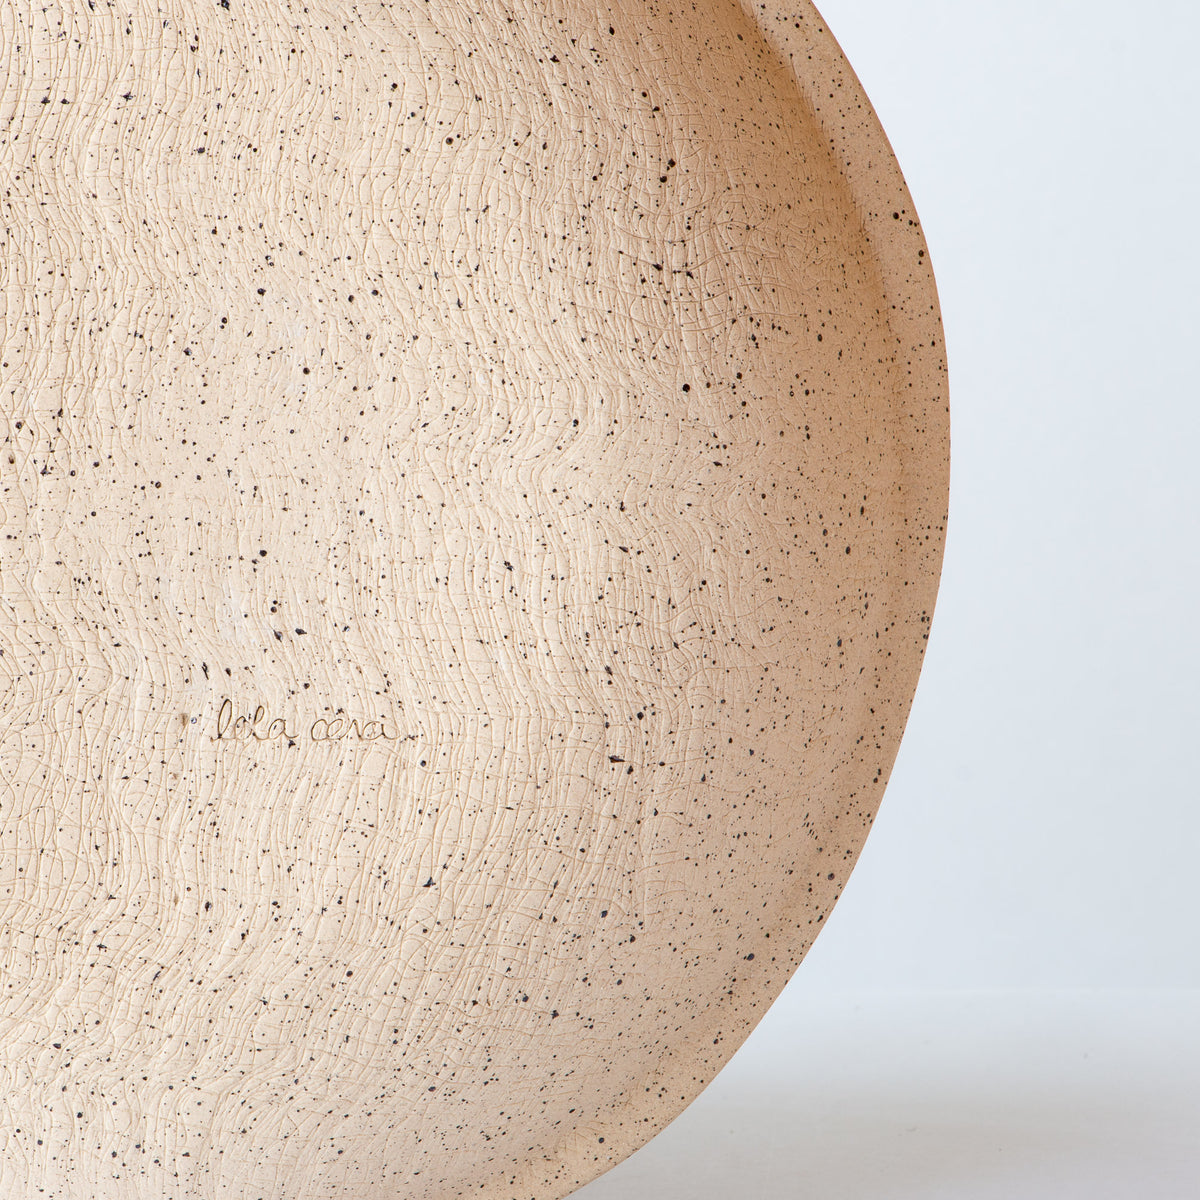 Back View Detail - Small Freckled Pasta Bowl - Handmade in Glazed Stoneware - Sold by Chic & Basta